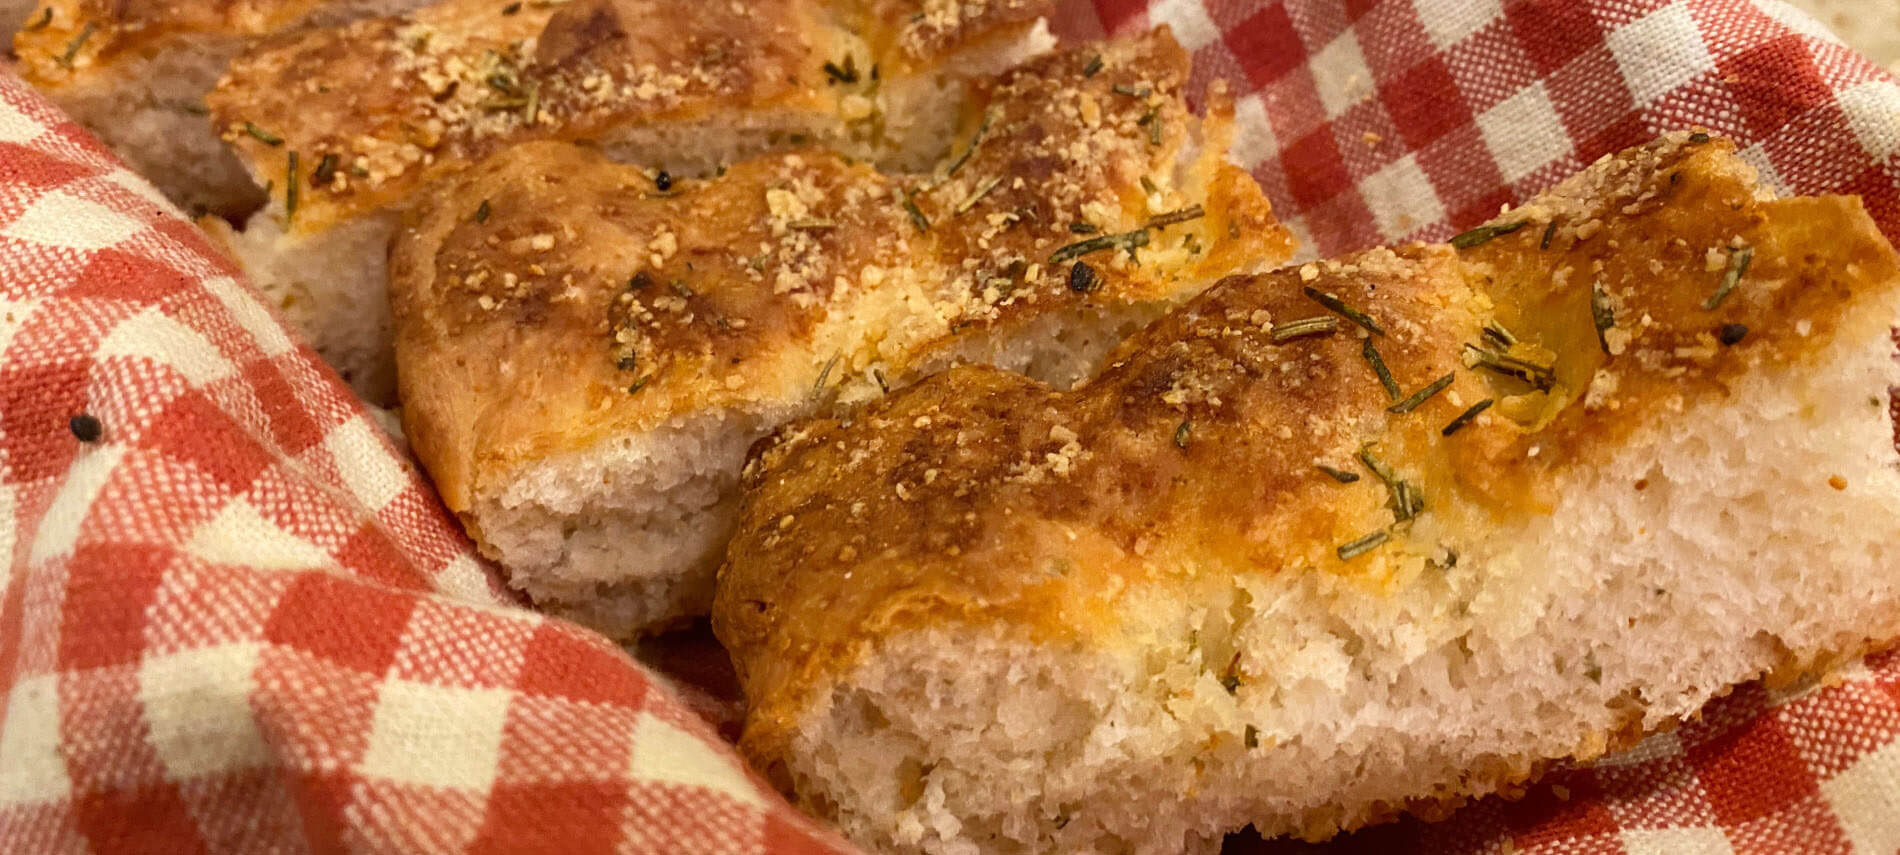 Slices of focaccia bread with rosemary and sea salt on a red and white checkered cloth